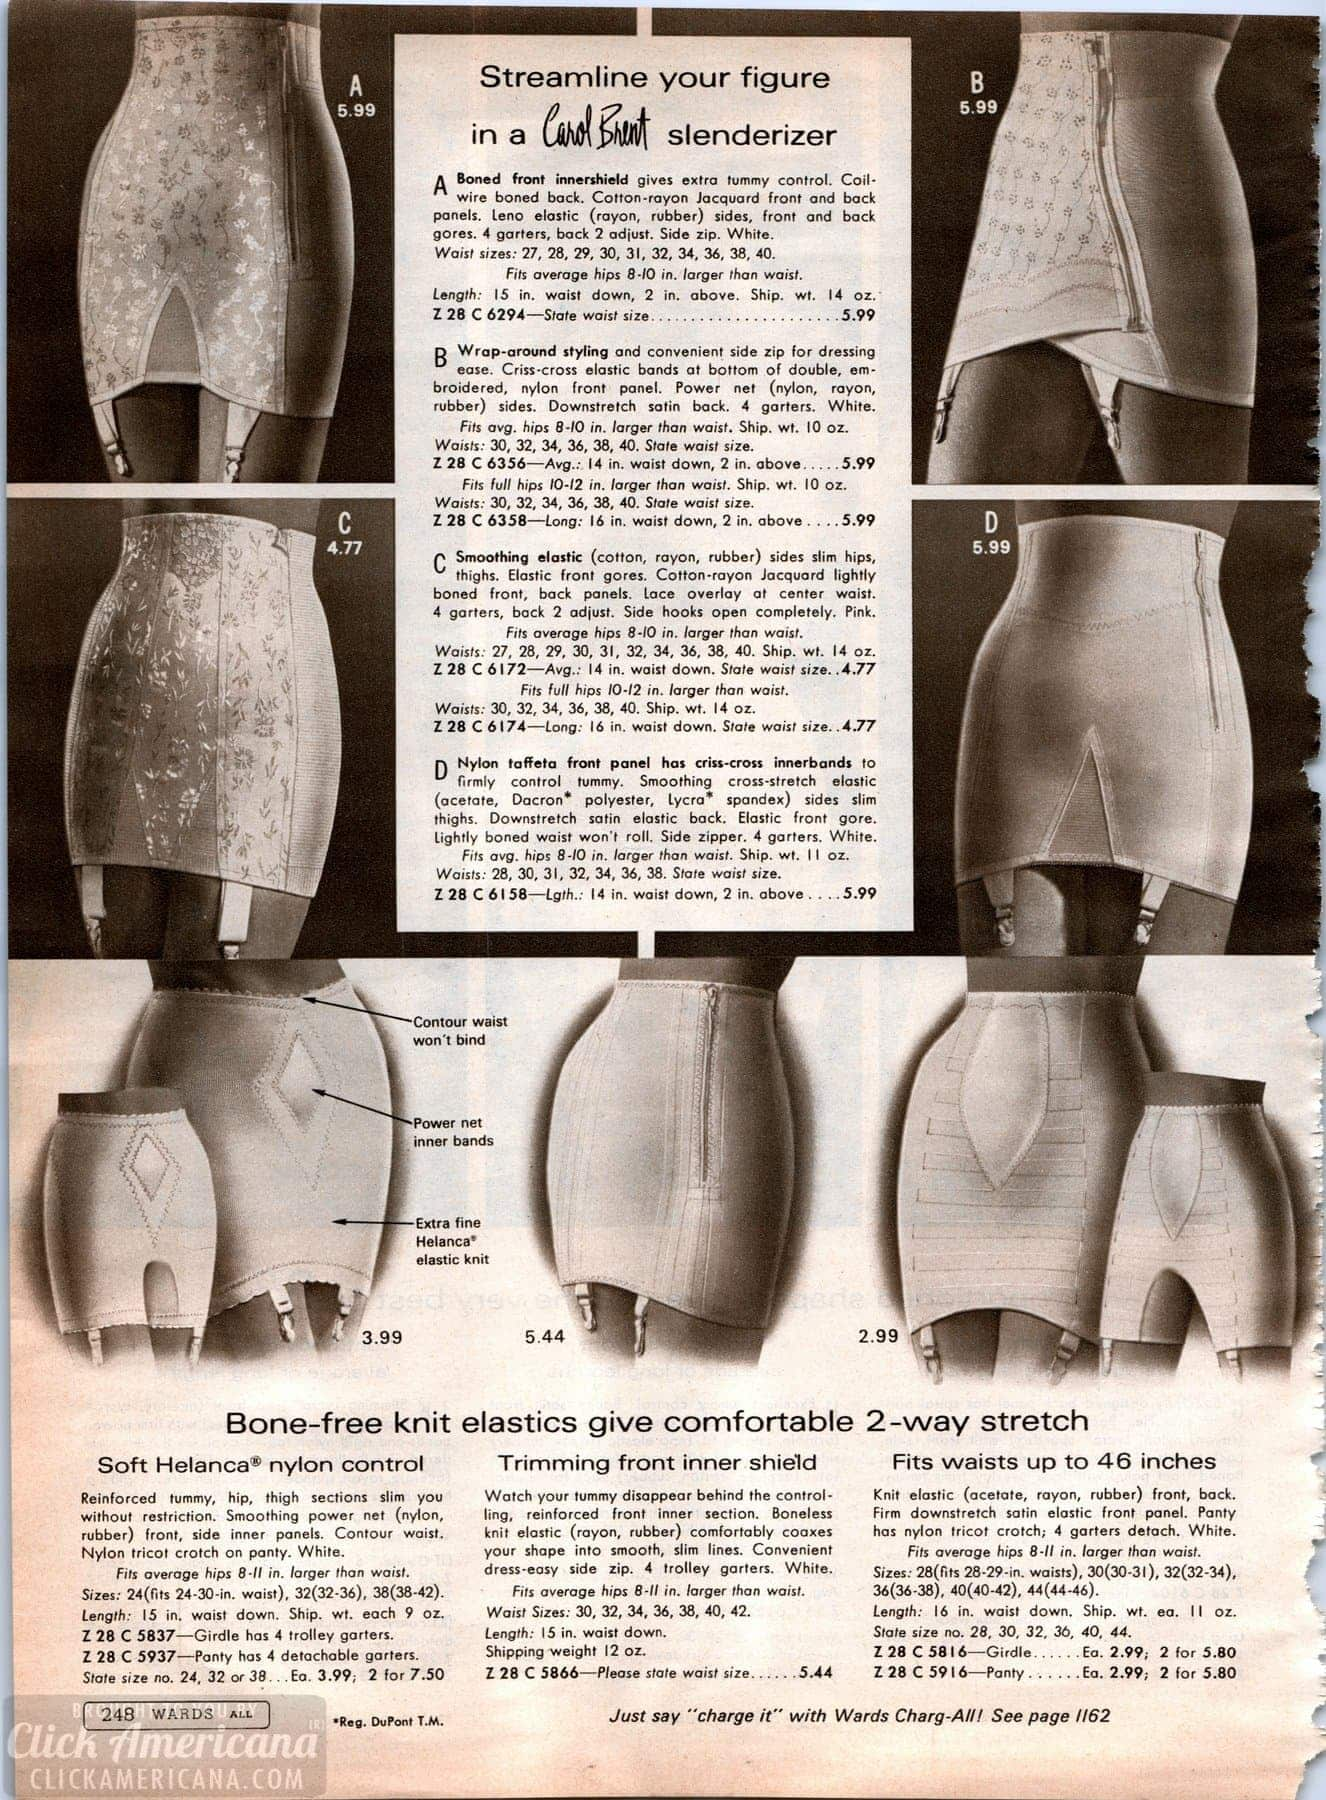 Vintage '60s lingerie - panty girdles from 1968 (4)